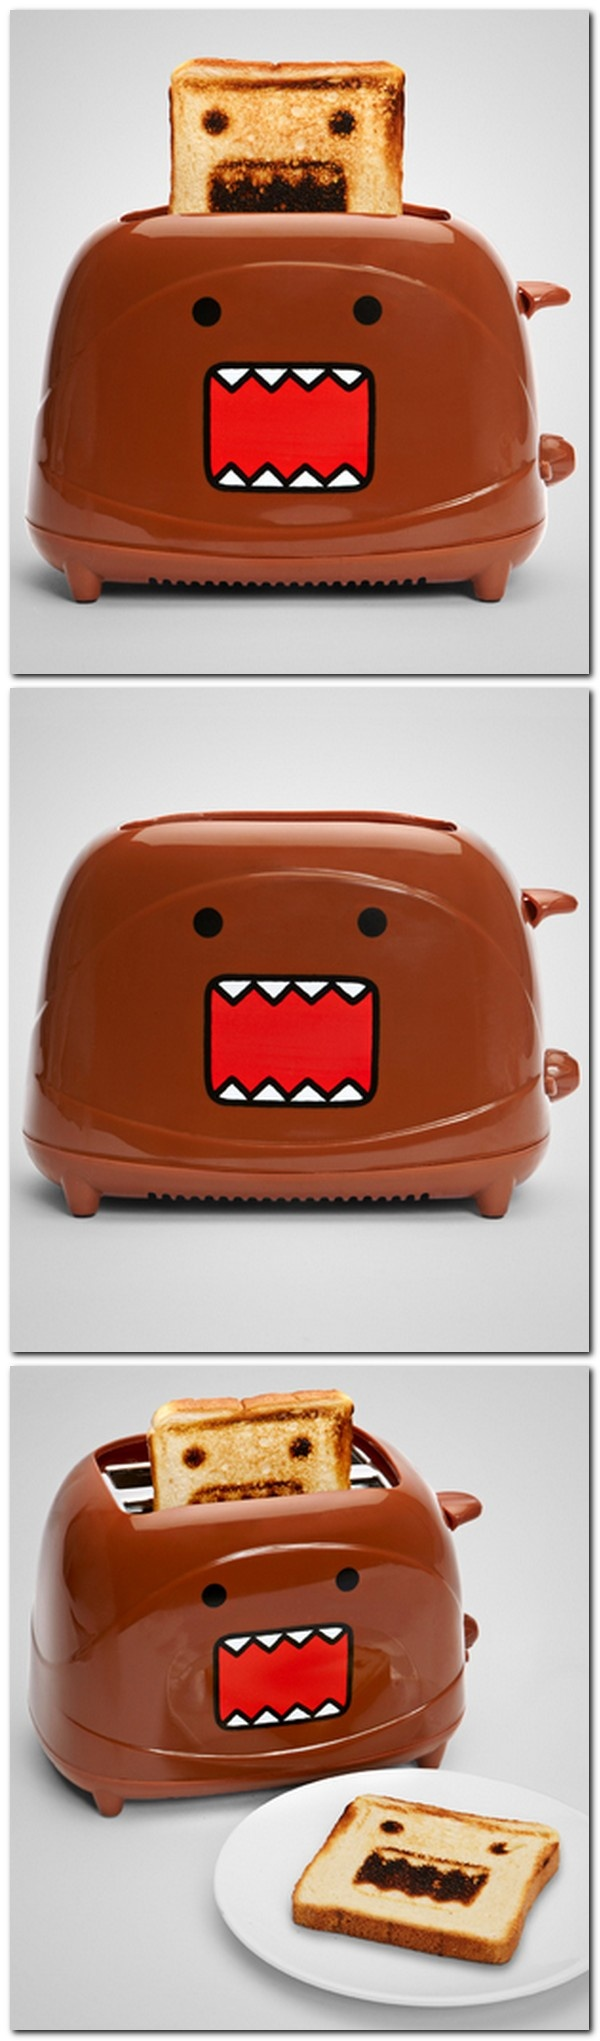 Domo Toaster. Banish your breakfast boredom! Domo's here to brighten your morning.